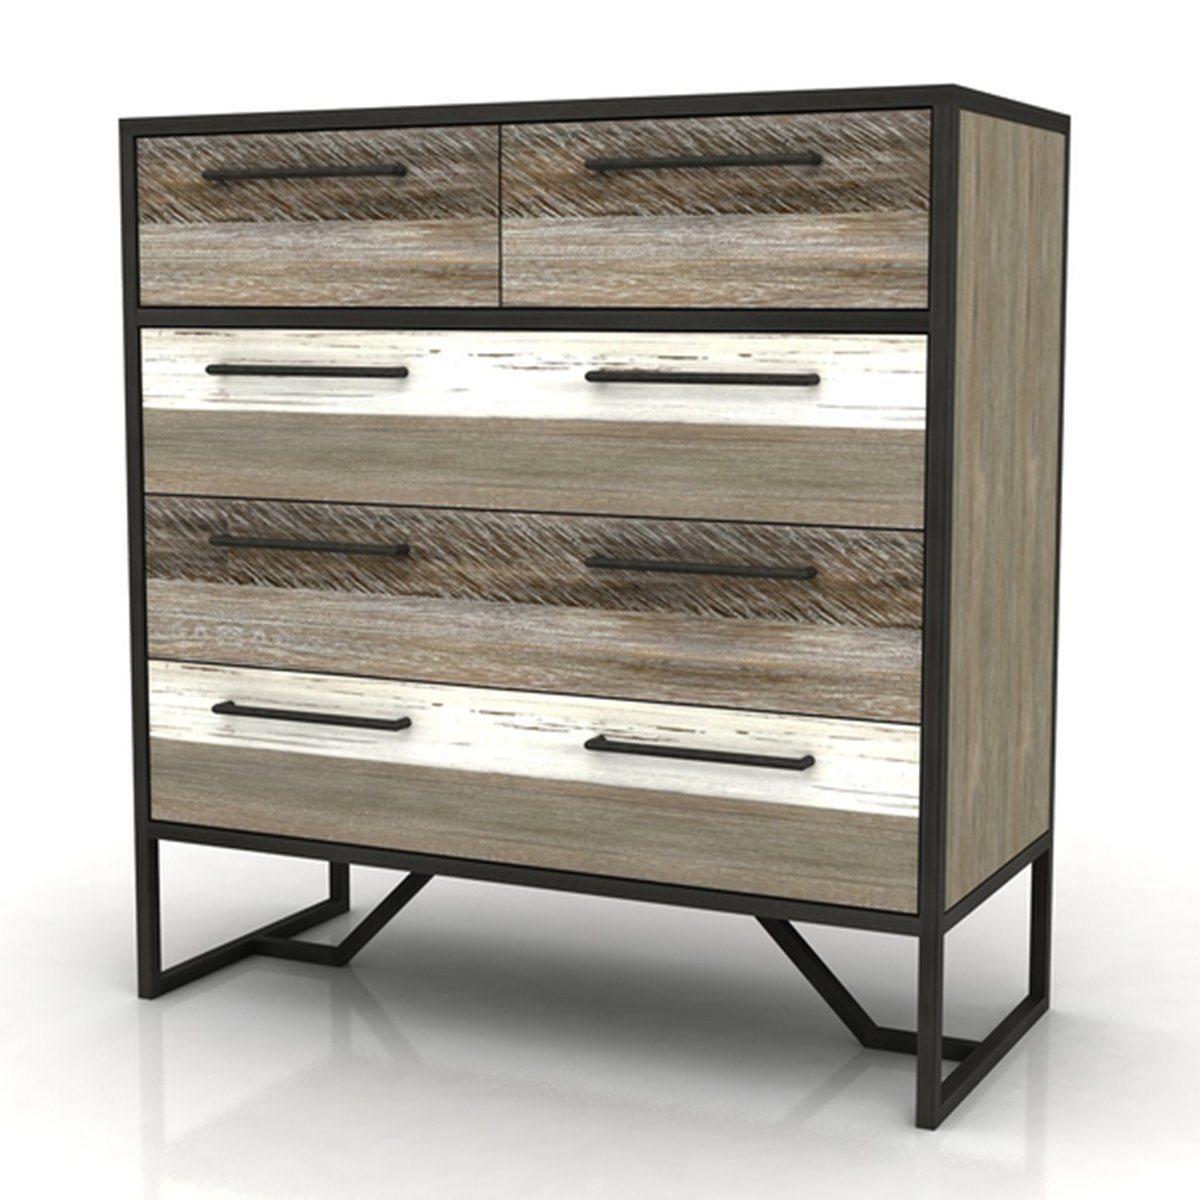 METRO HAVANA 5 DRAWER CHEST - Showhome Furniture